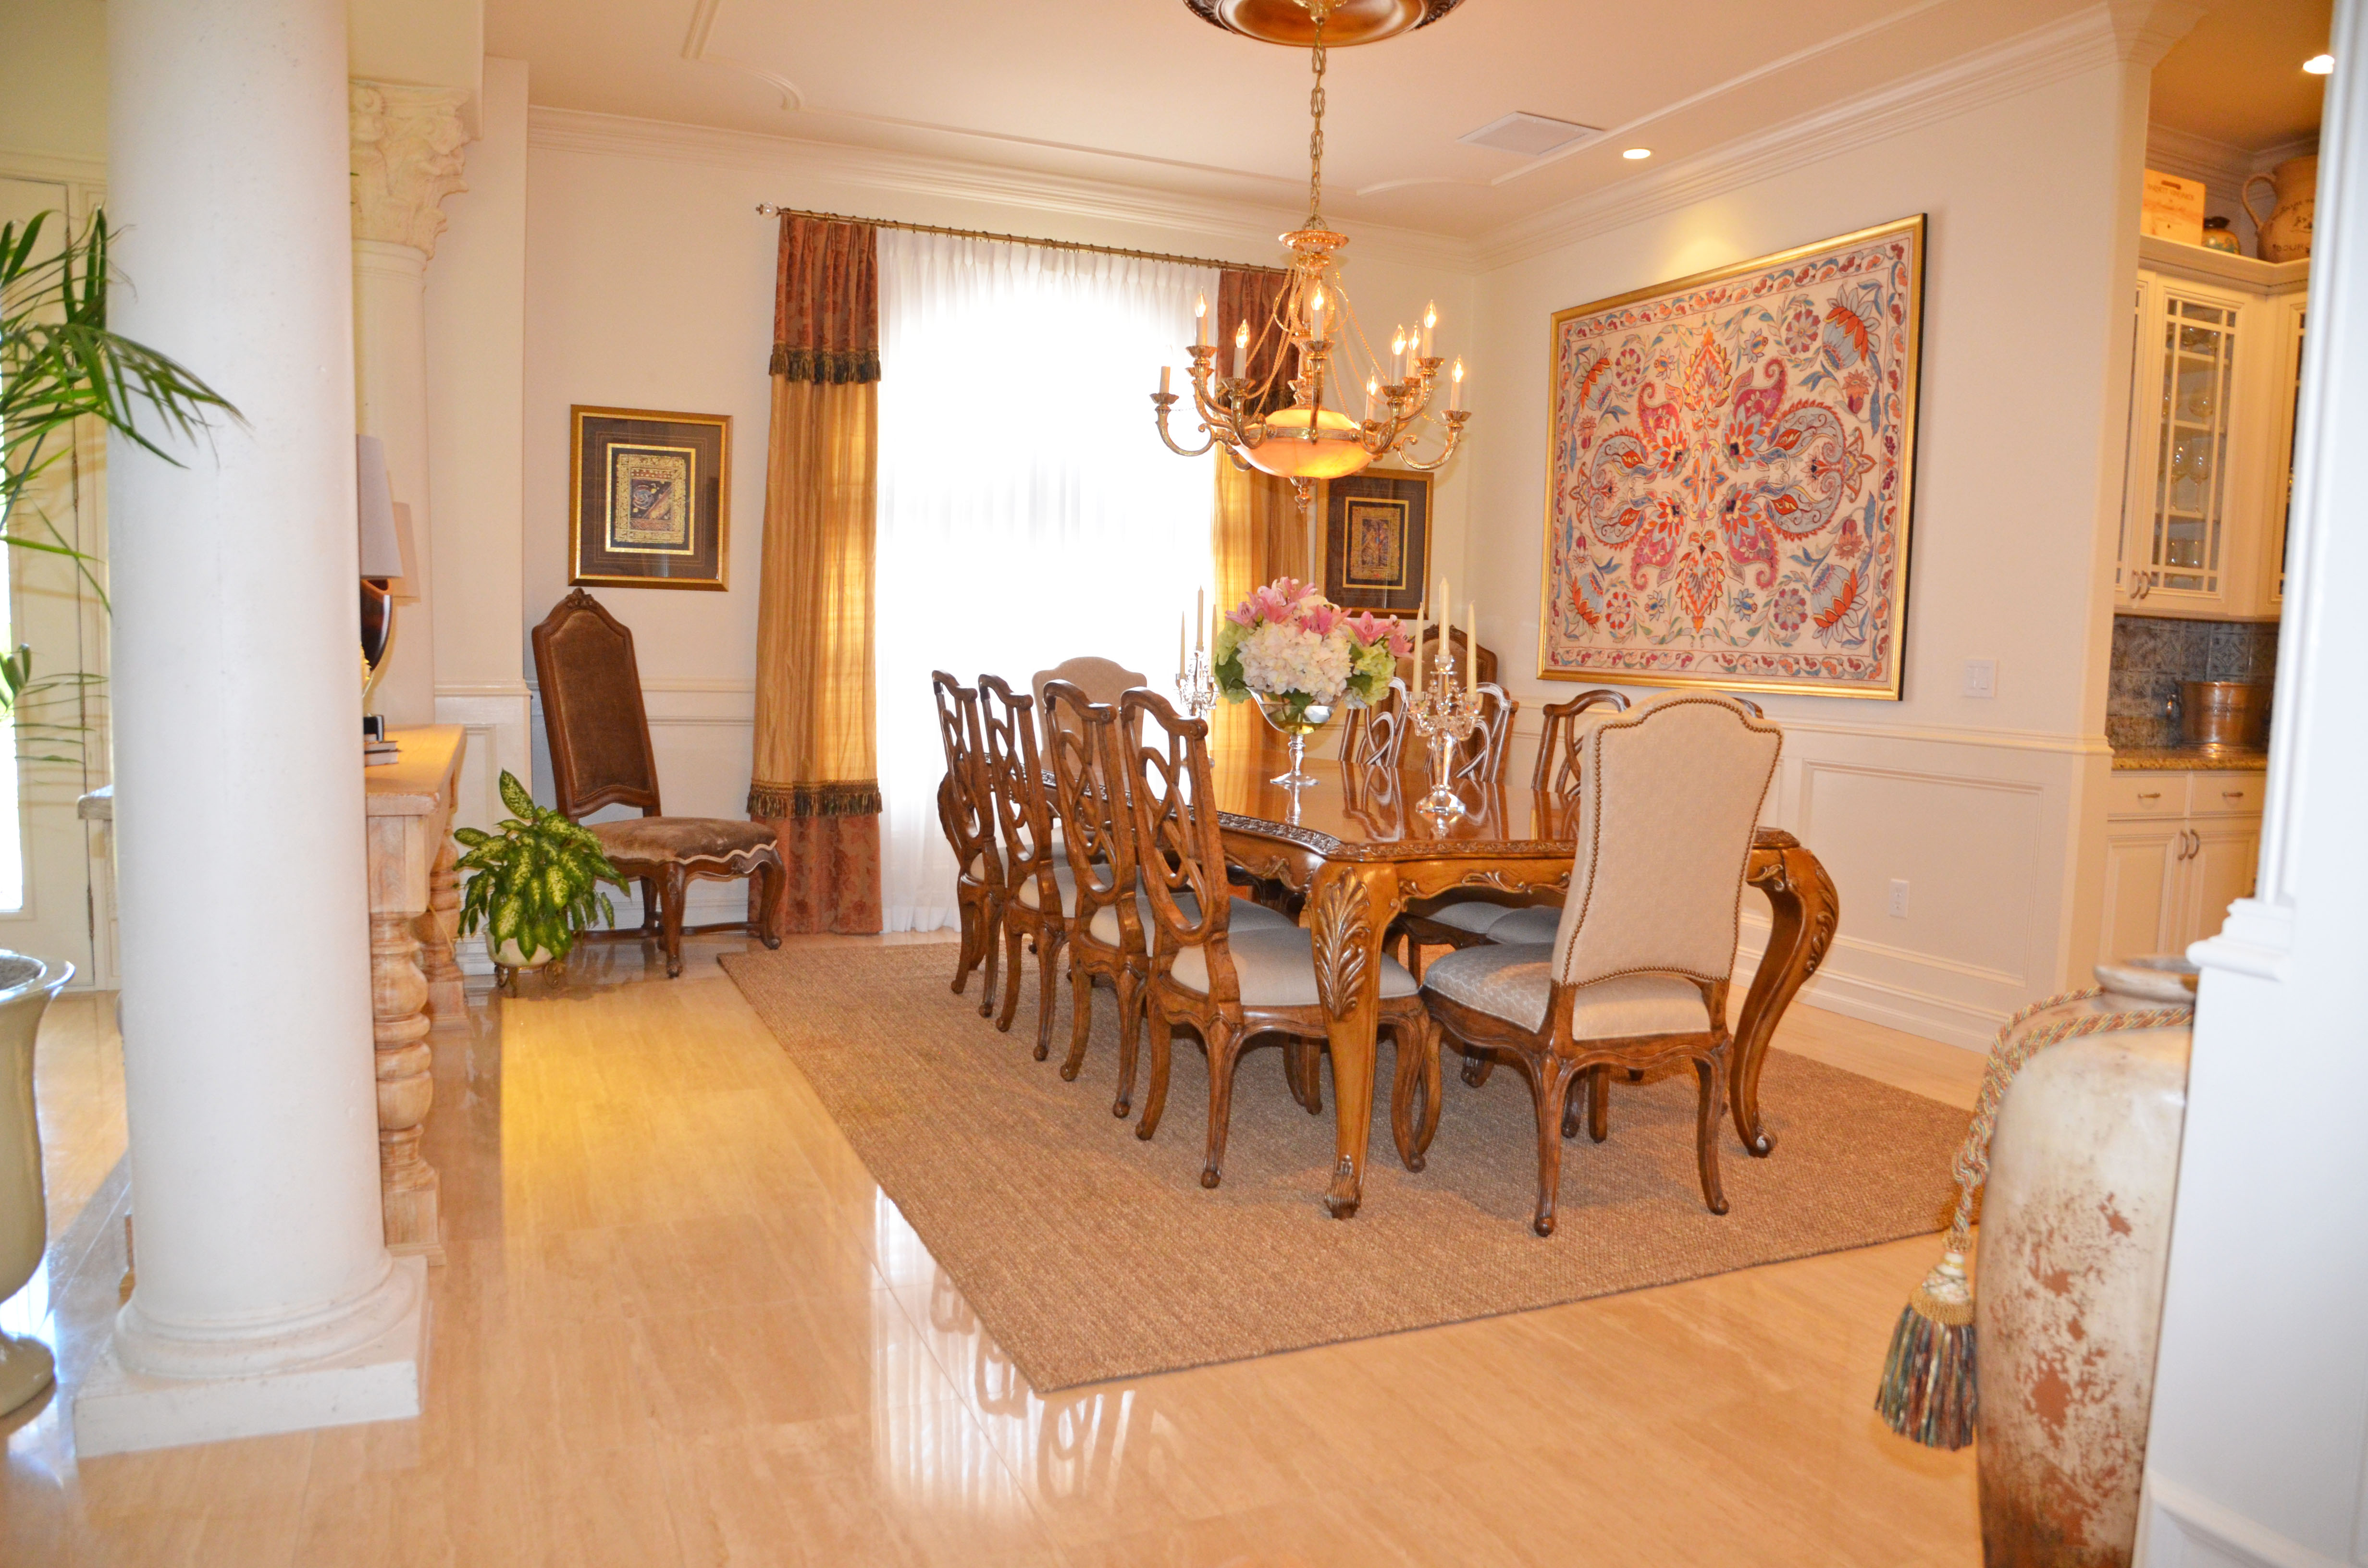 Dining room after B